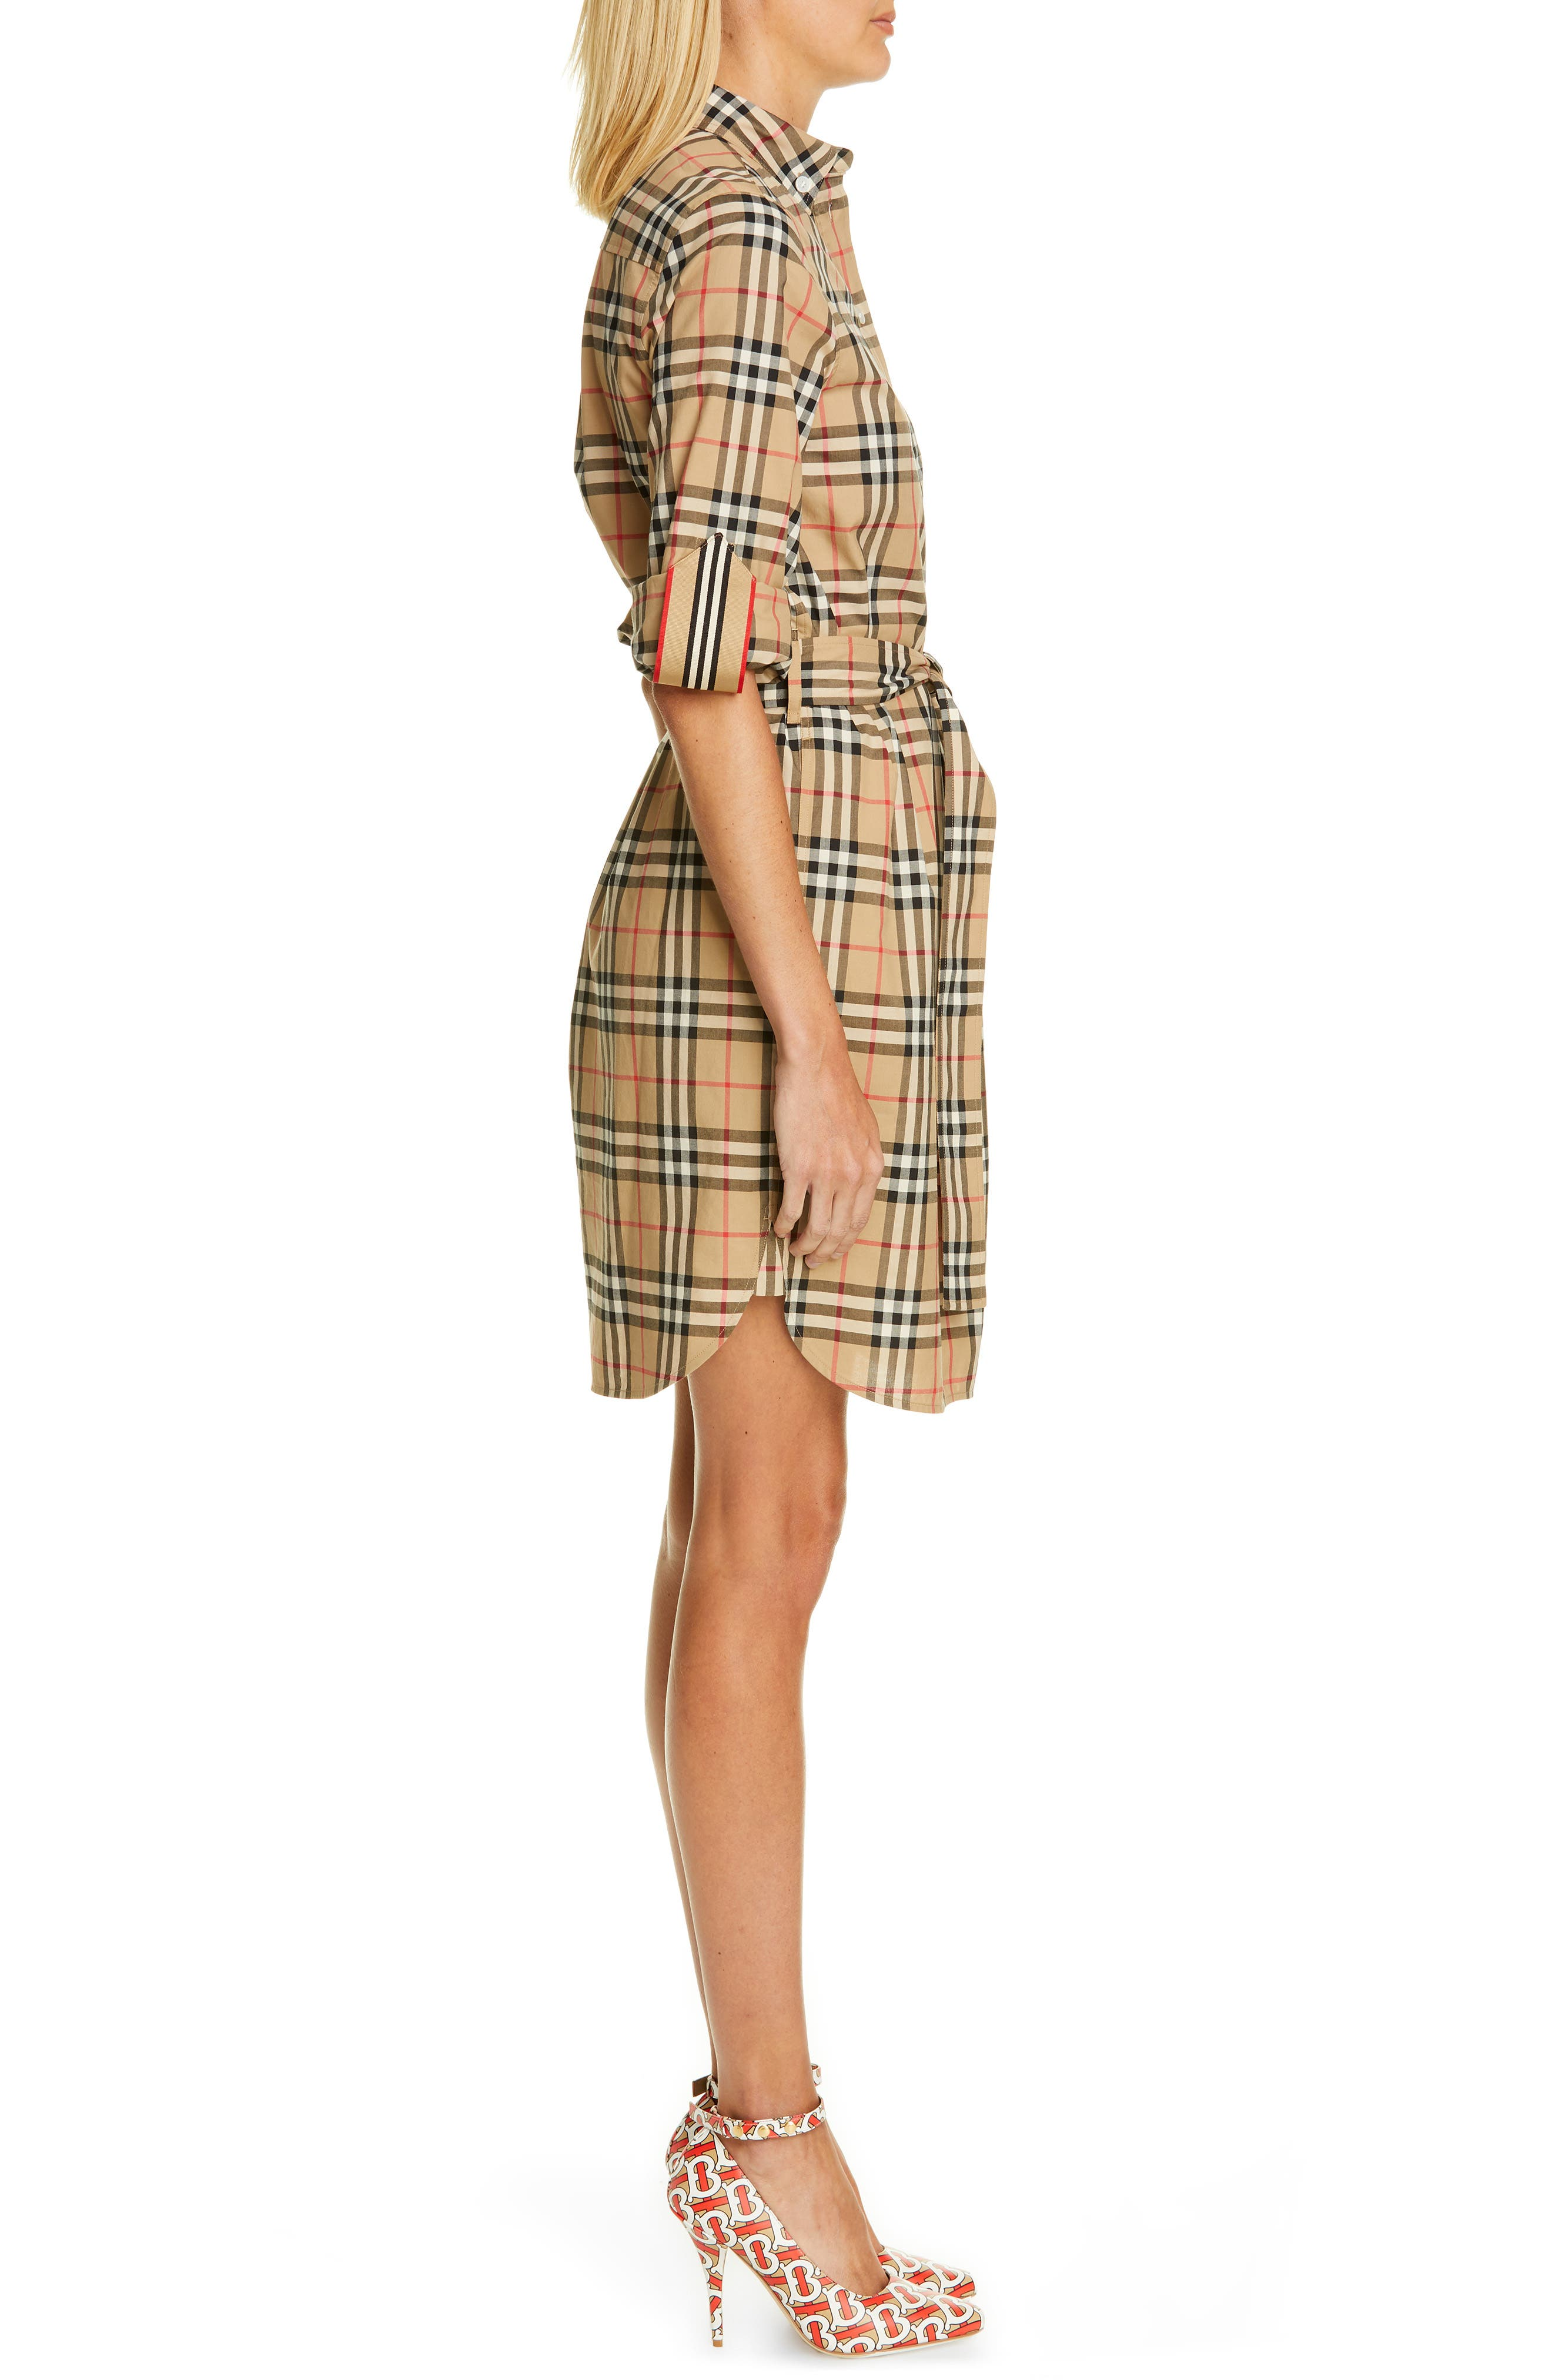 BURBERRY, Giovanna Archive Check Shirtdress, Alternate thumbnail 3, color, ARCHIVE BEIGE IP CHK